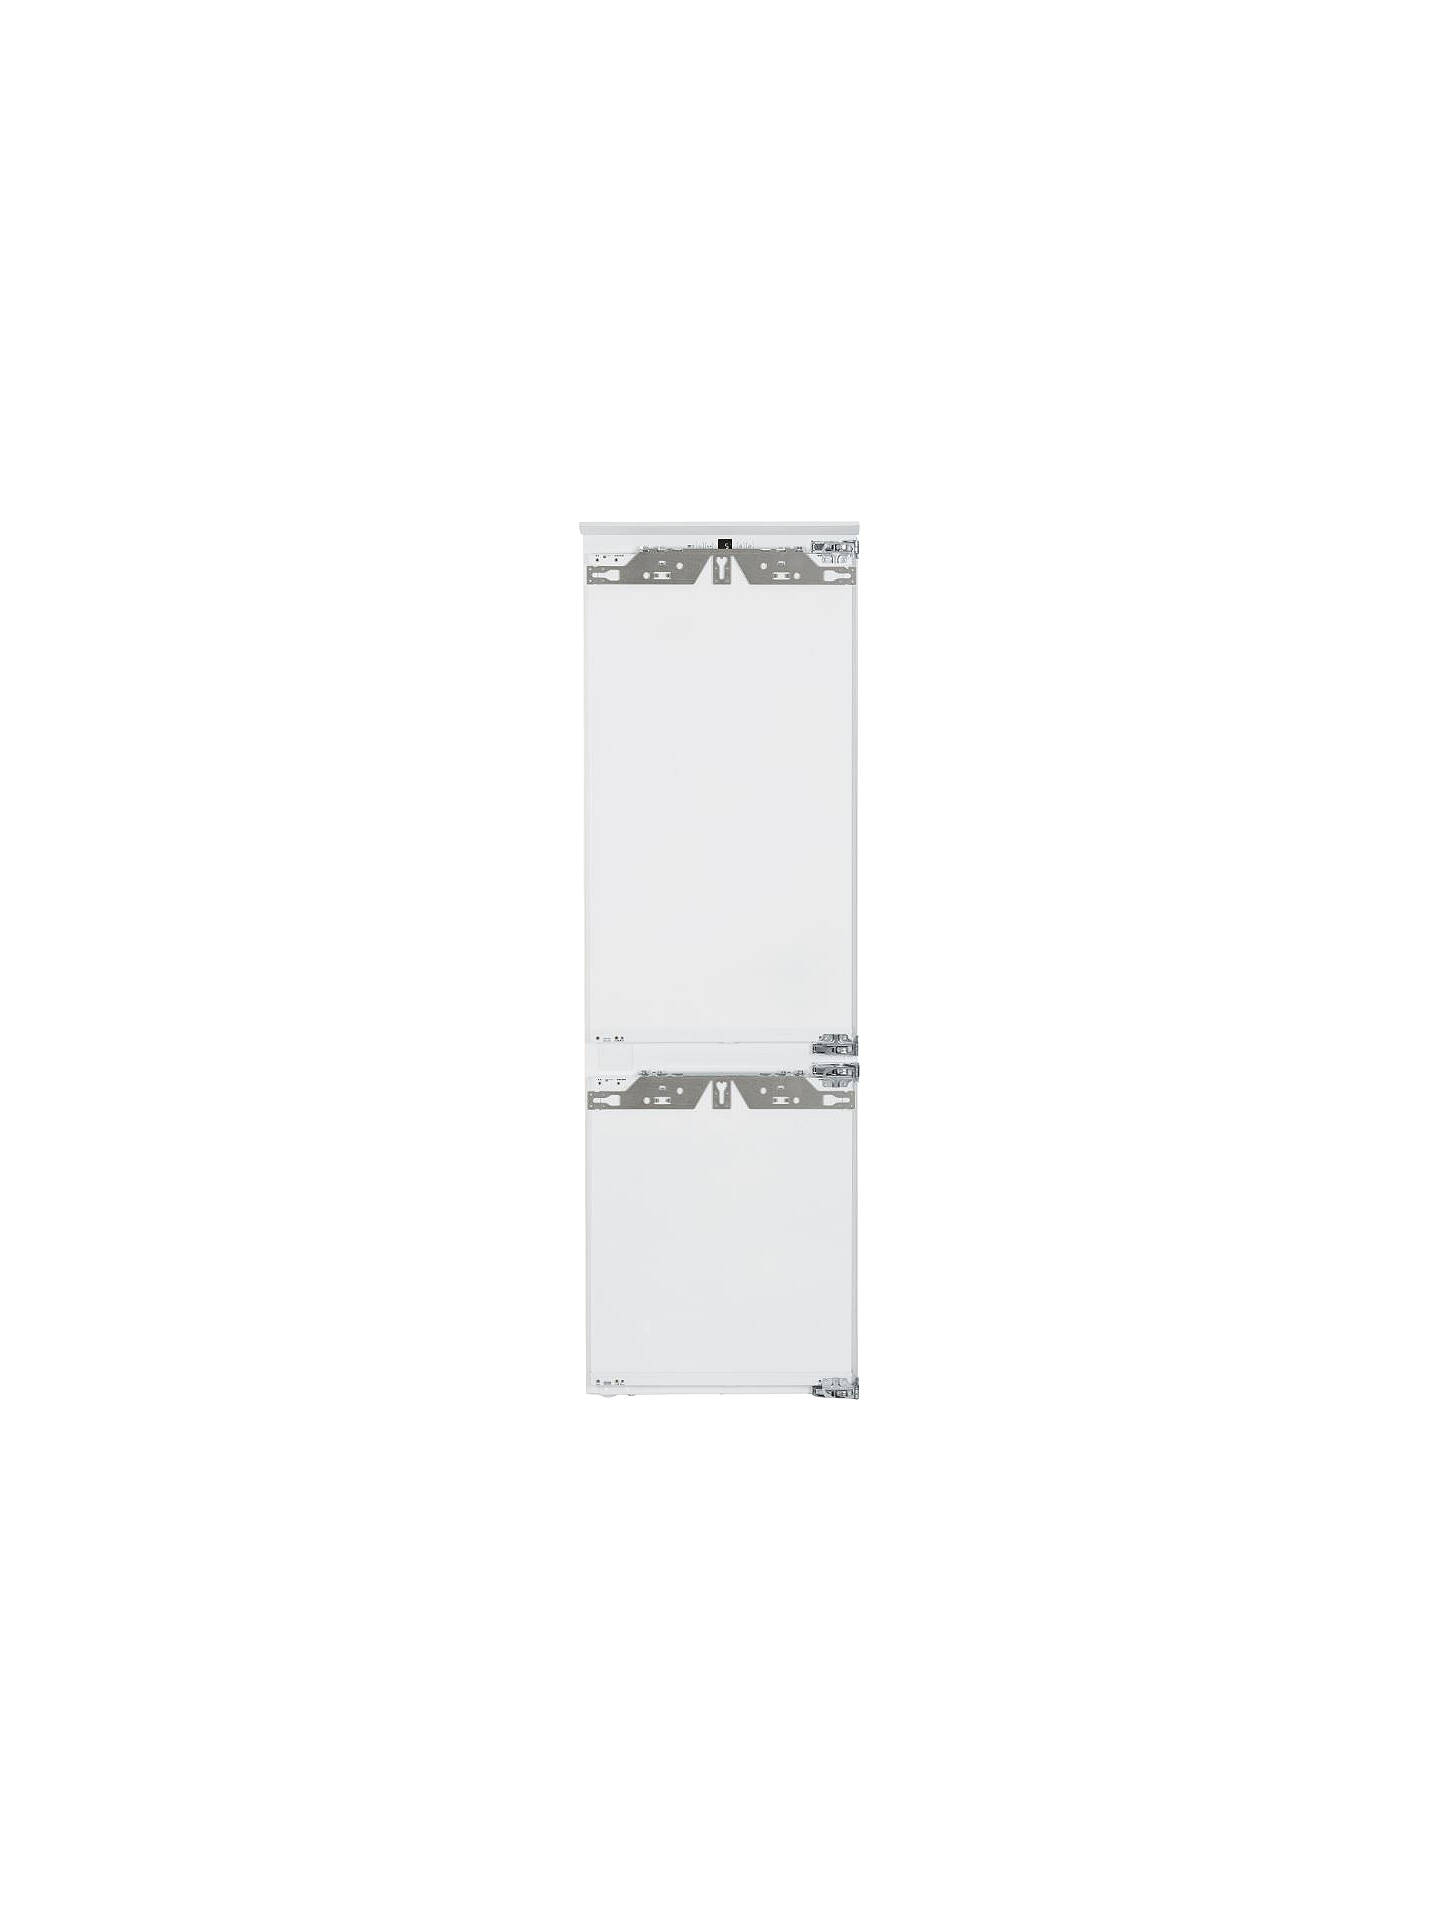 BuyLiebherr ICUN3324 Integrated Fridge Freezer, A++ Energy Rating, 56cm Wide, White Online at johnlewis.com